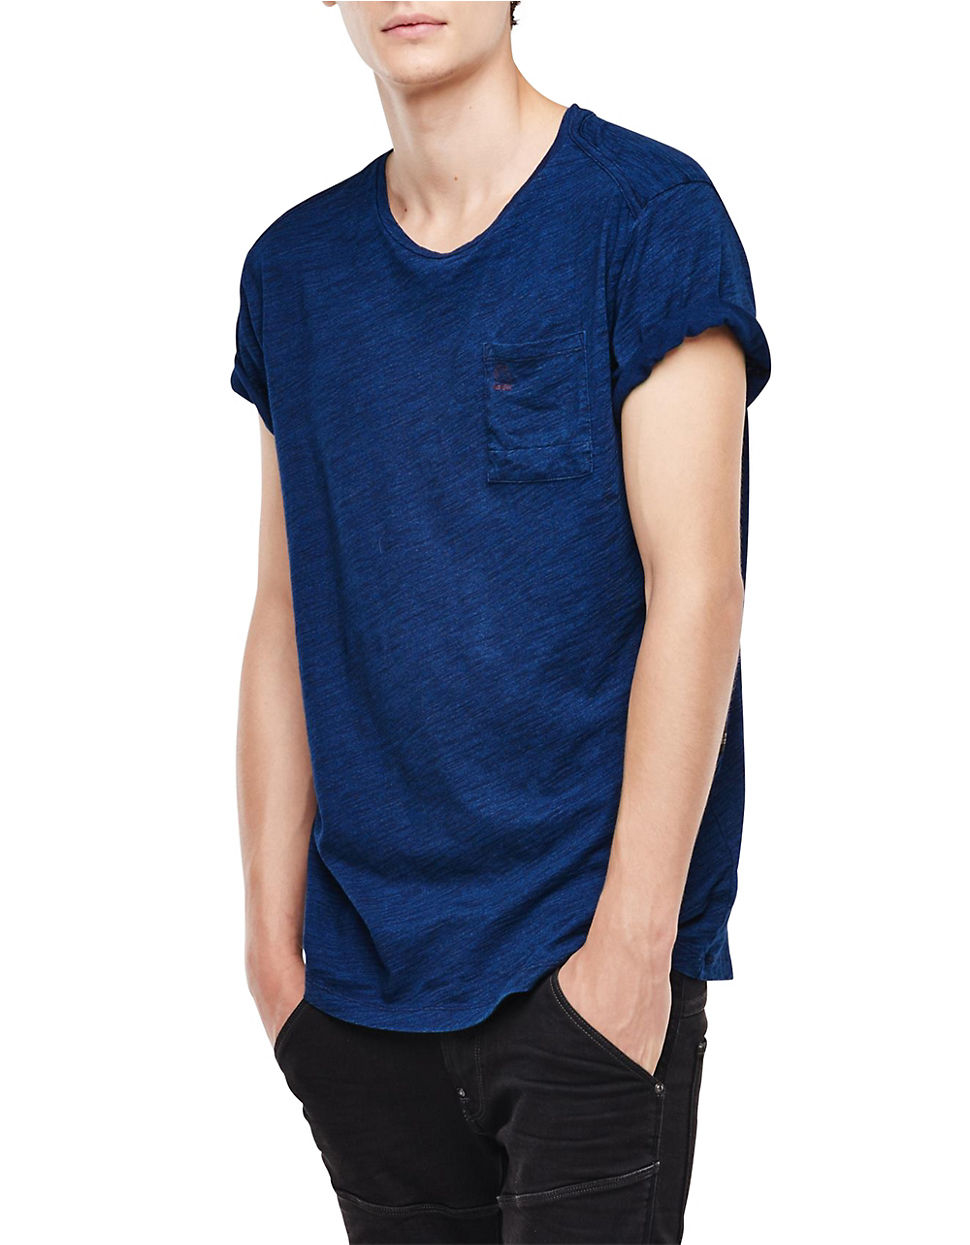 lyst g star raw cotton t shirt in blue for men. Black Bedroom Furniture Sets. Home Design Ideas